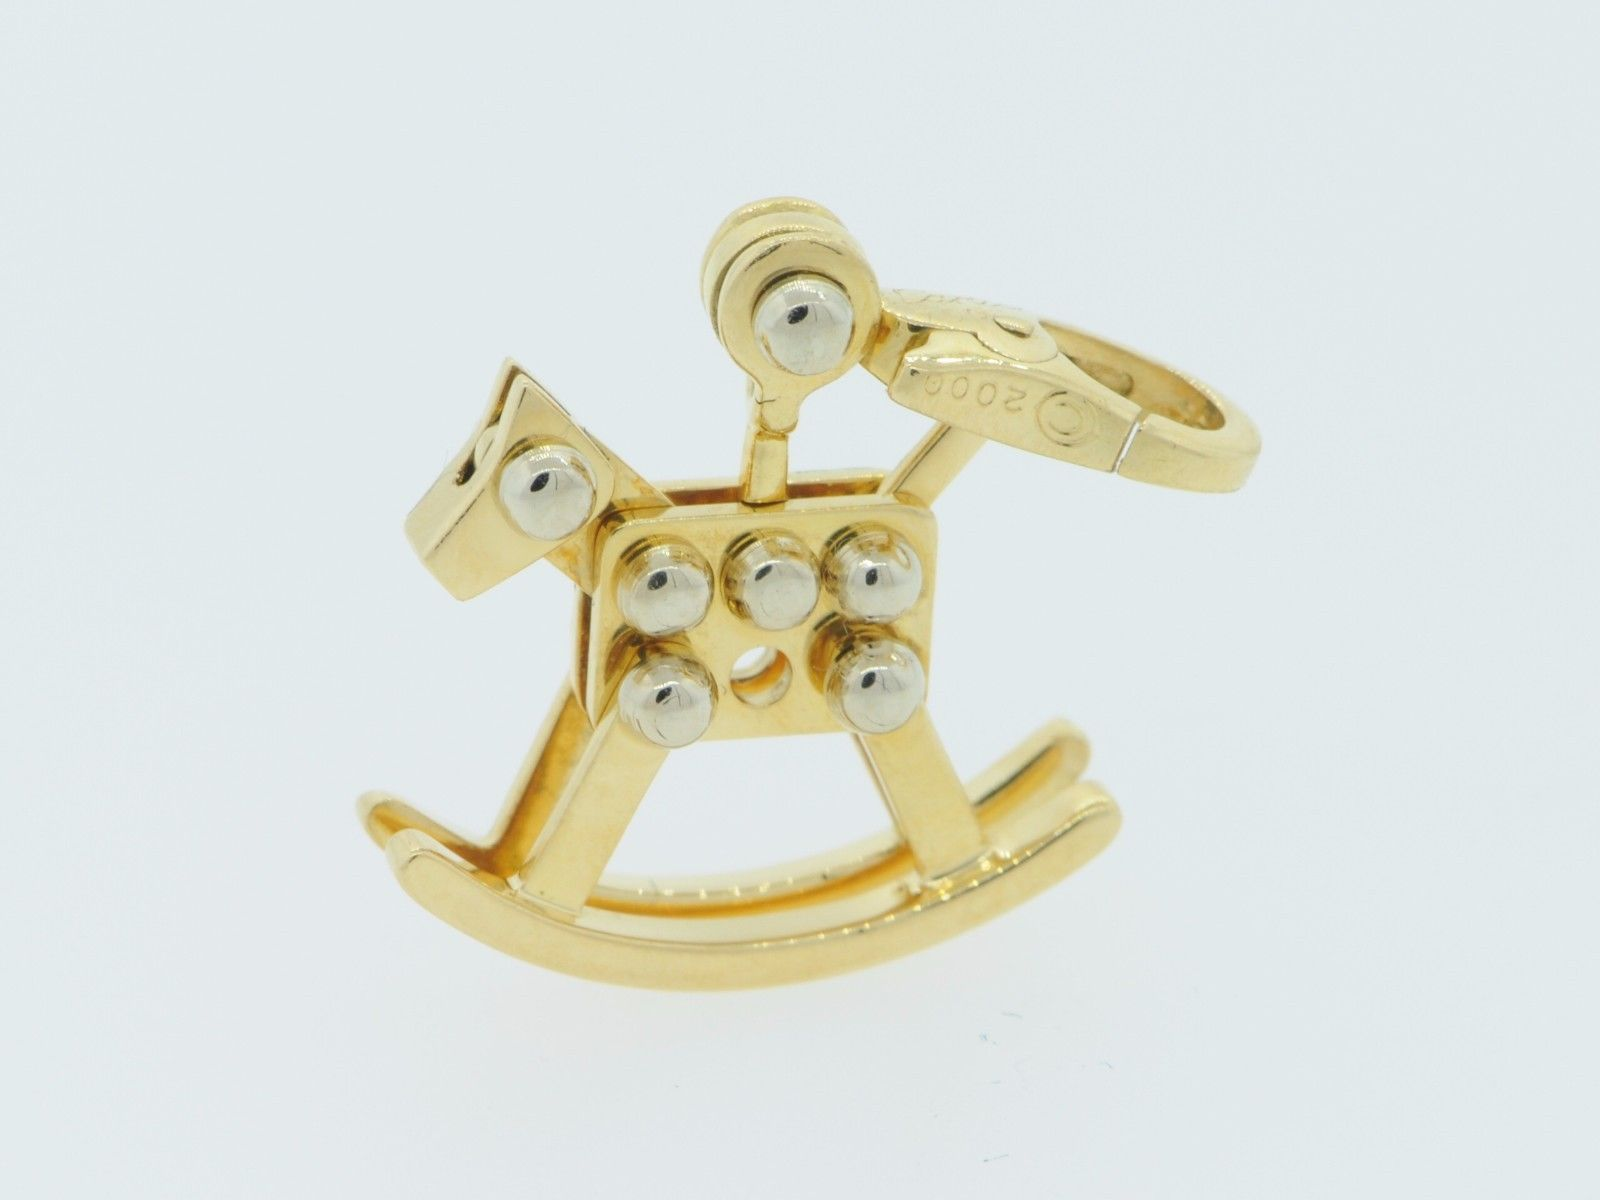 Cartier (c) 18K Yellow Gold Rocking Horse Toy Charm